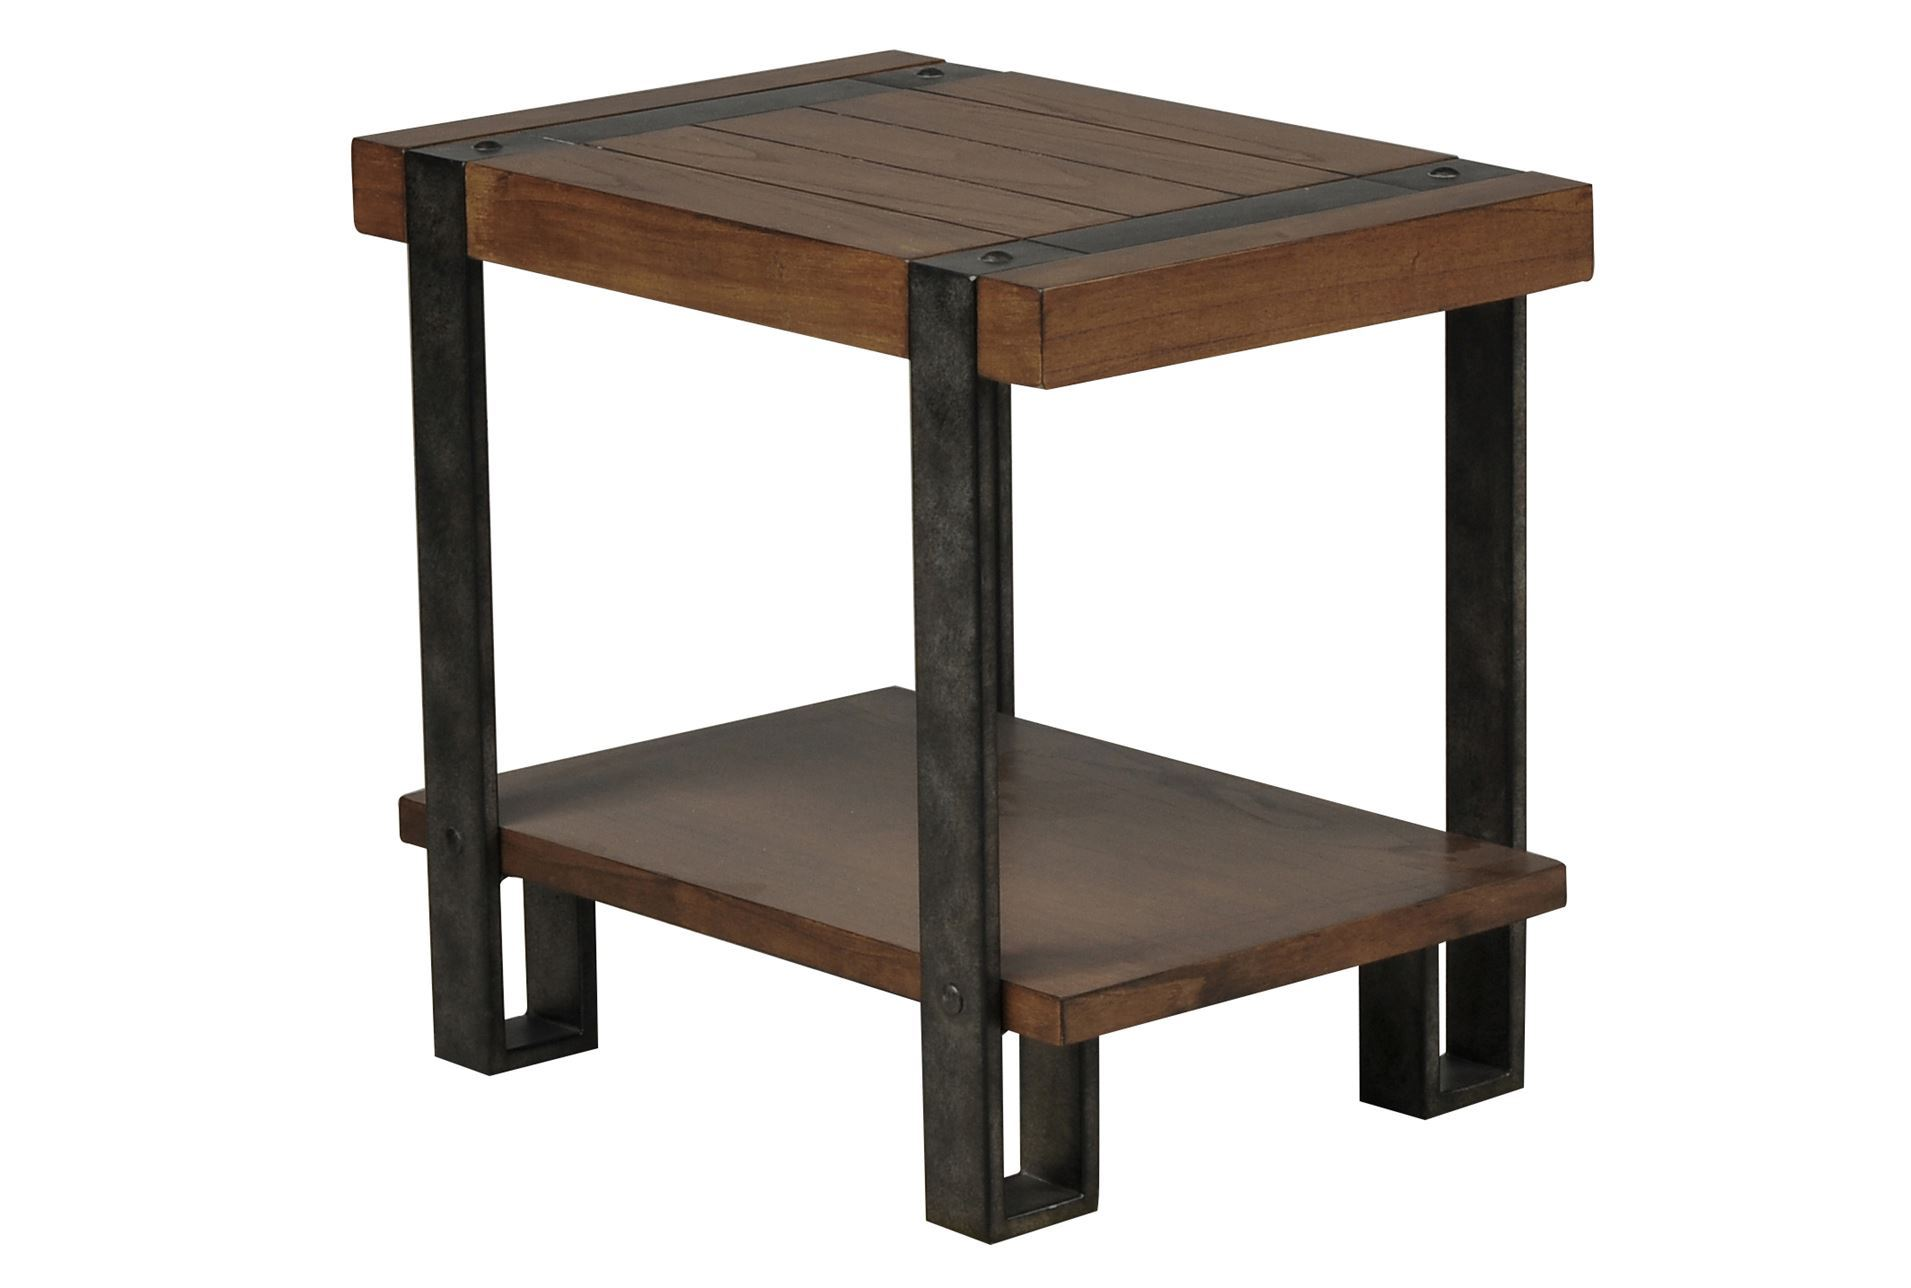 Marley Chairside Table Living Spaces